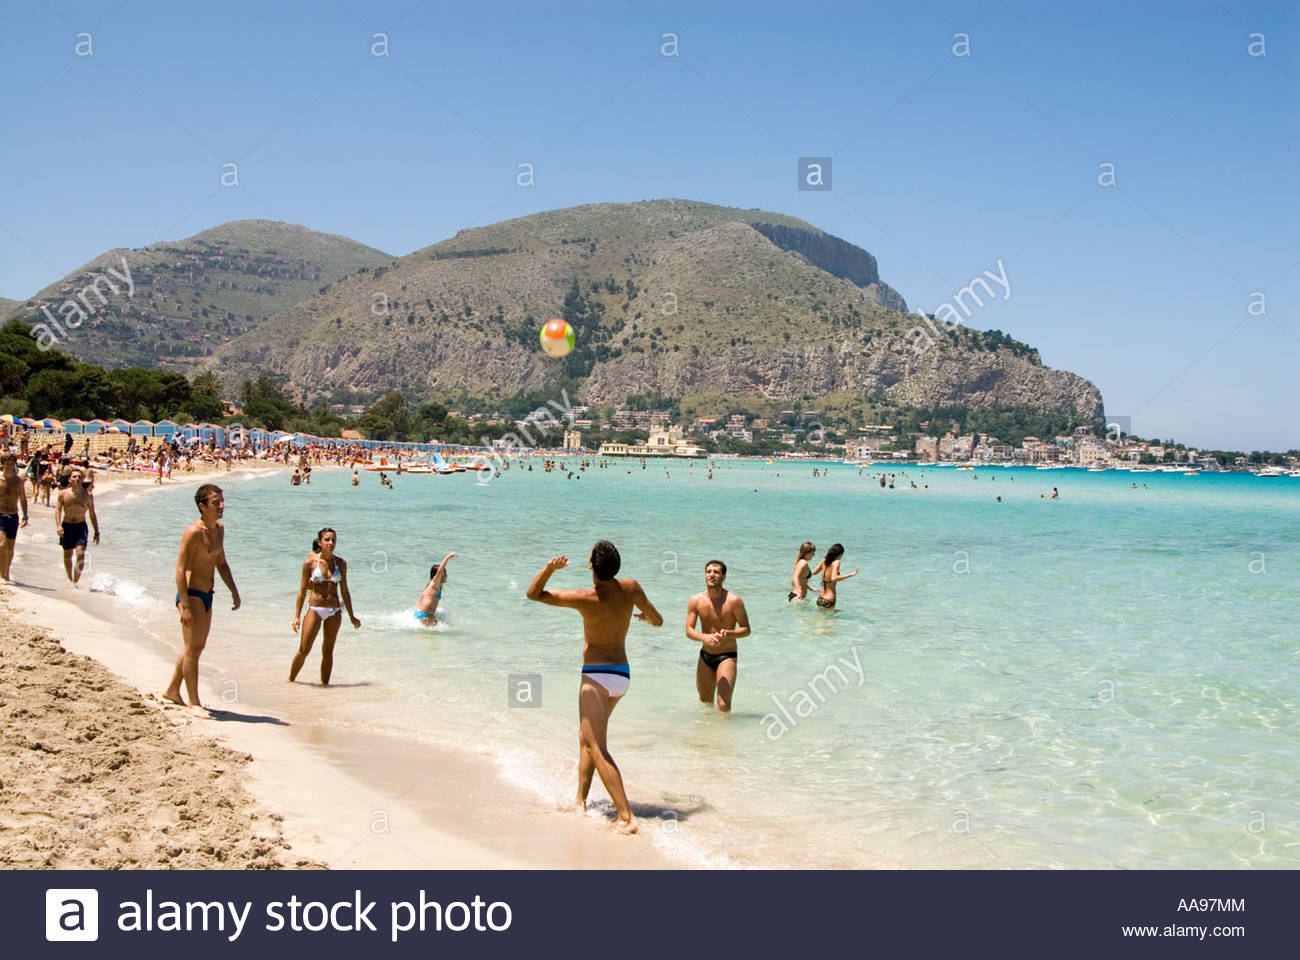 Young People Playing A Ball Game On The Beach At Resort Of Mondello Palermo Sicily Italy